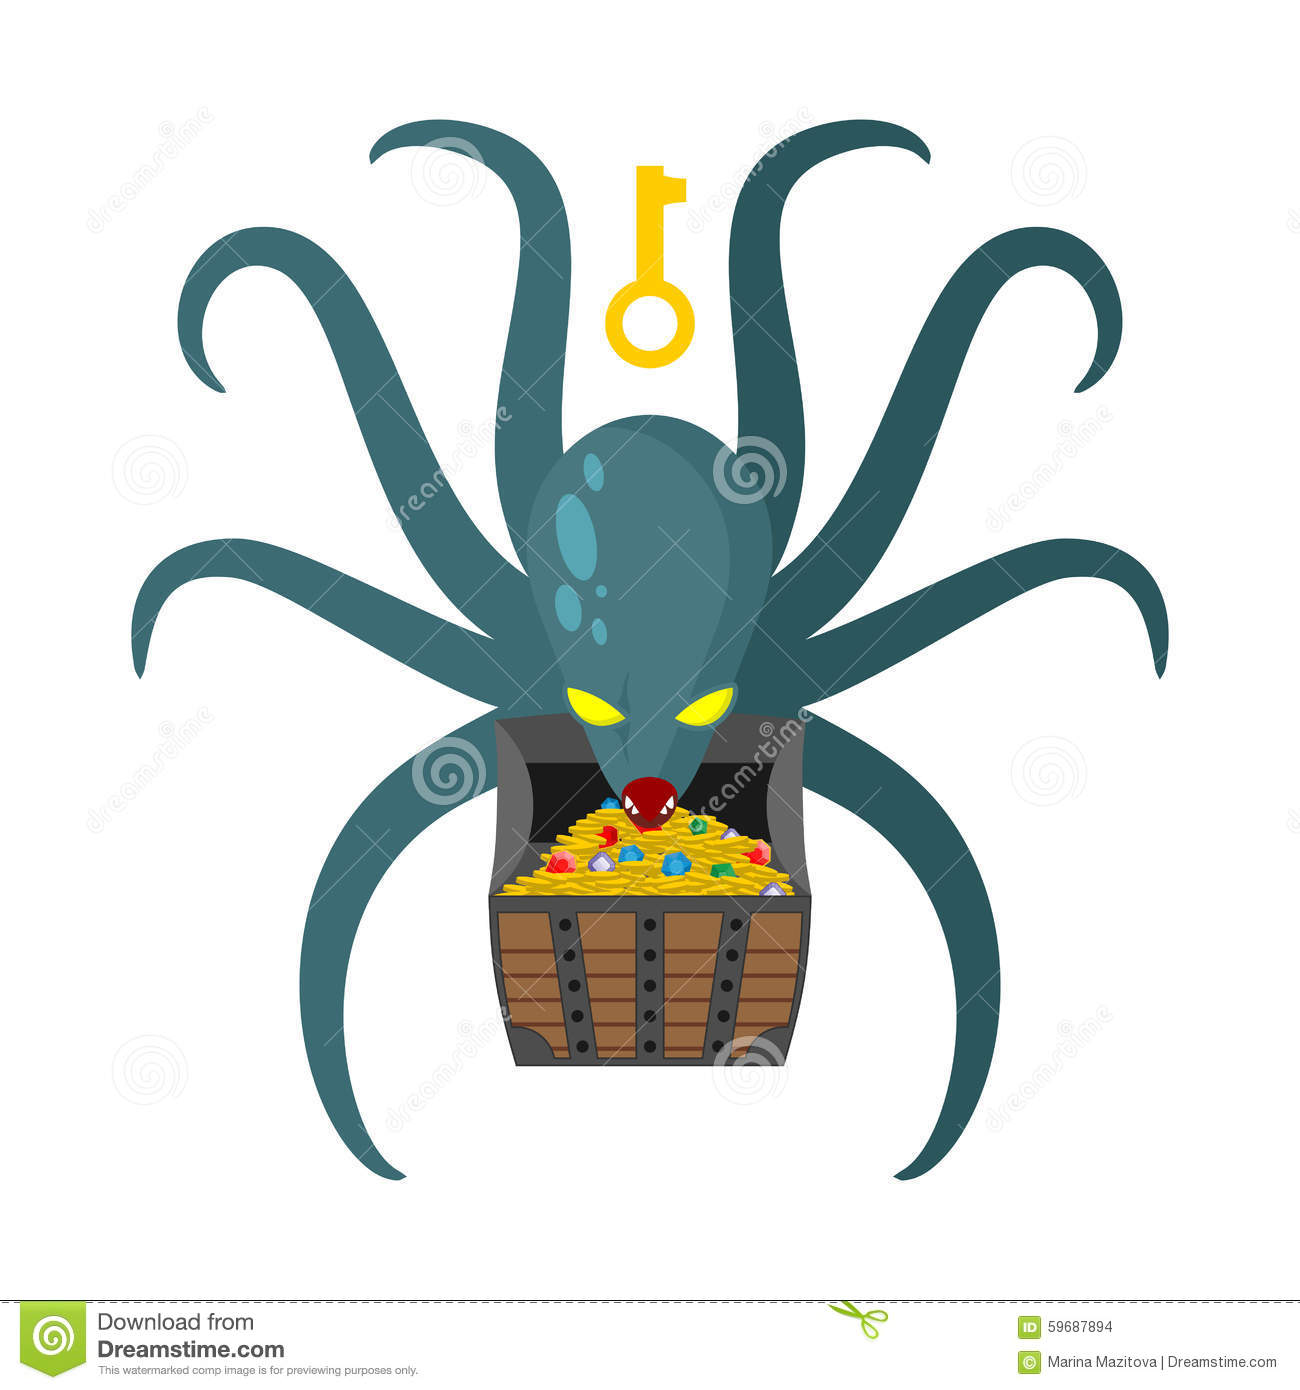 Octopus Guarding Pirate Treasures Gold Chest Kraken Cthulhu A